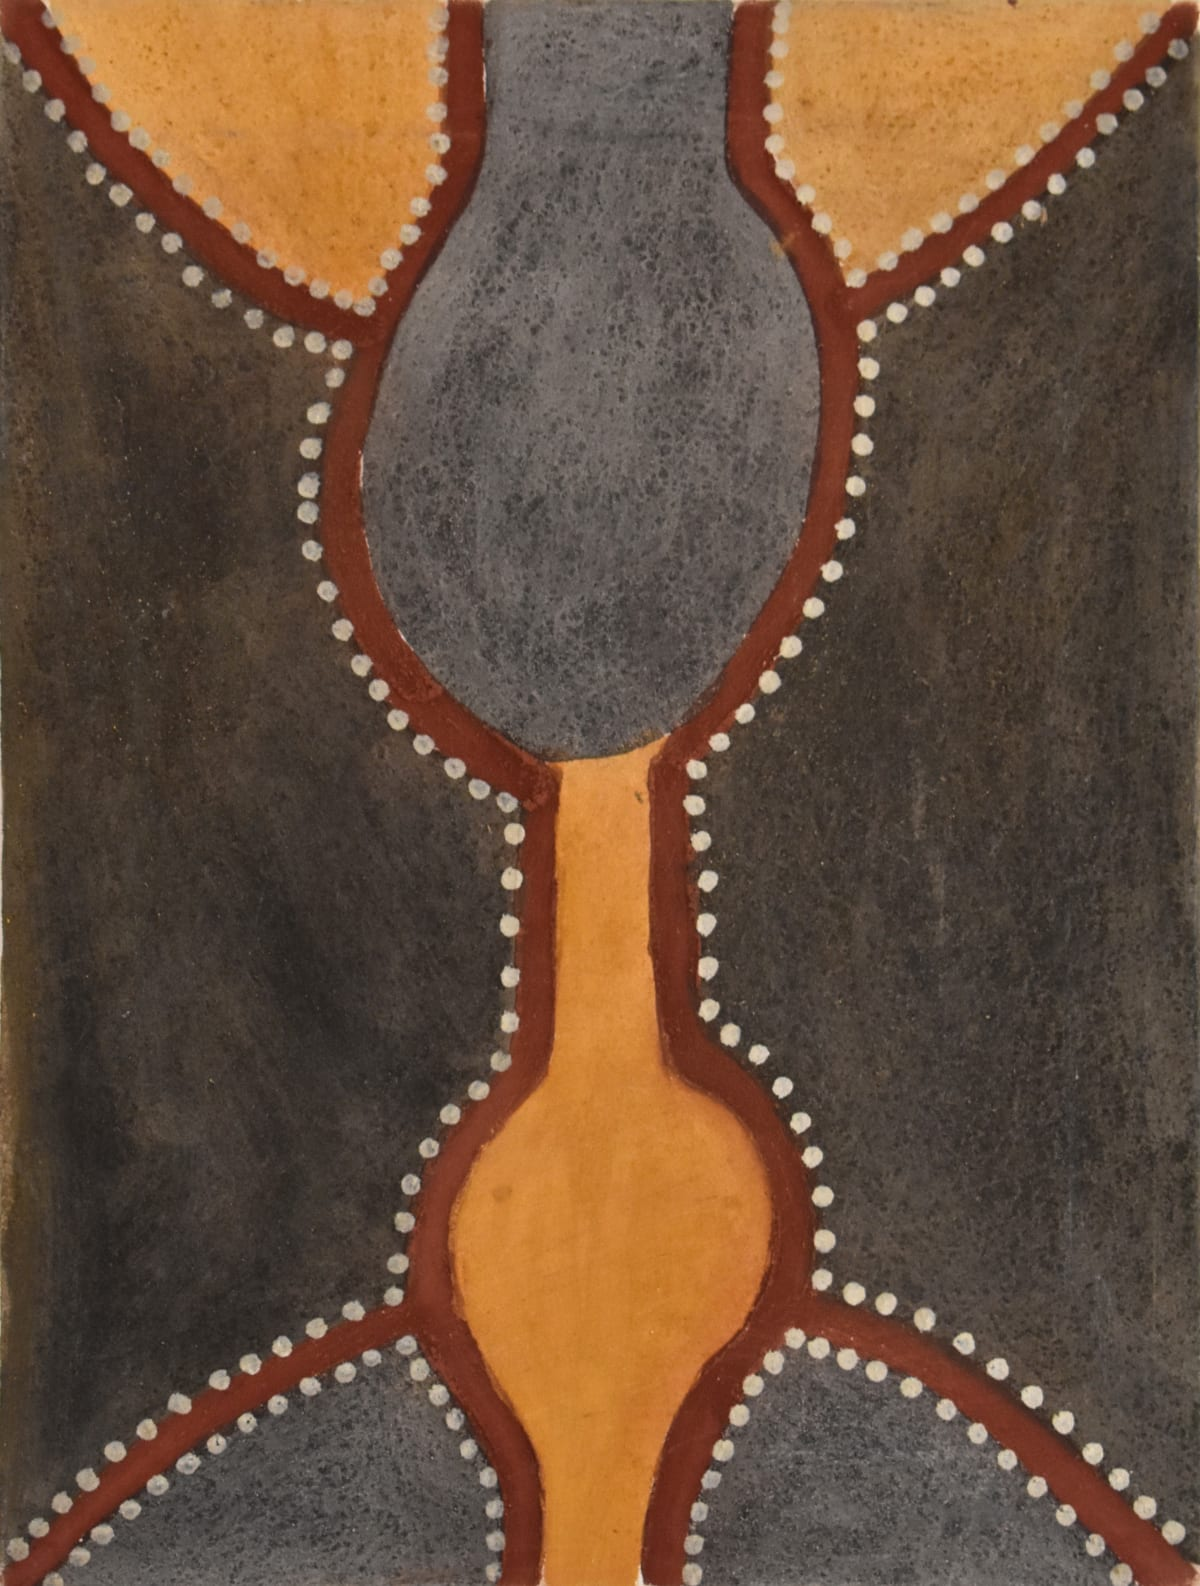 Hector Jandany Ngayardarwun, Ngarrgooroon Country, 2000 Natural ochre & pigment on canvas 80 x 60 cm